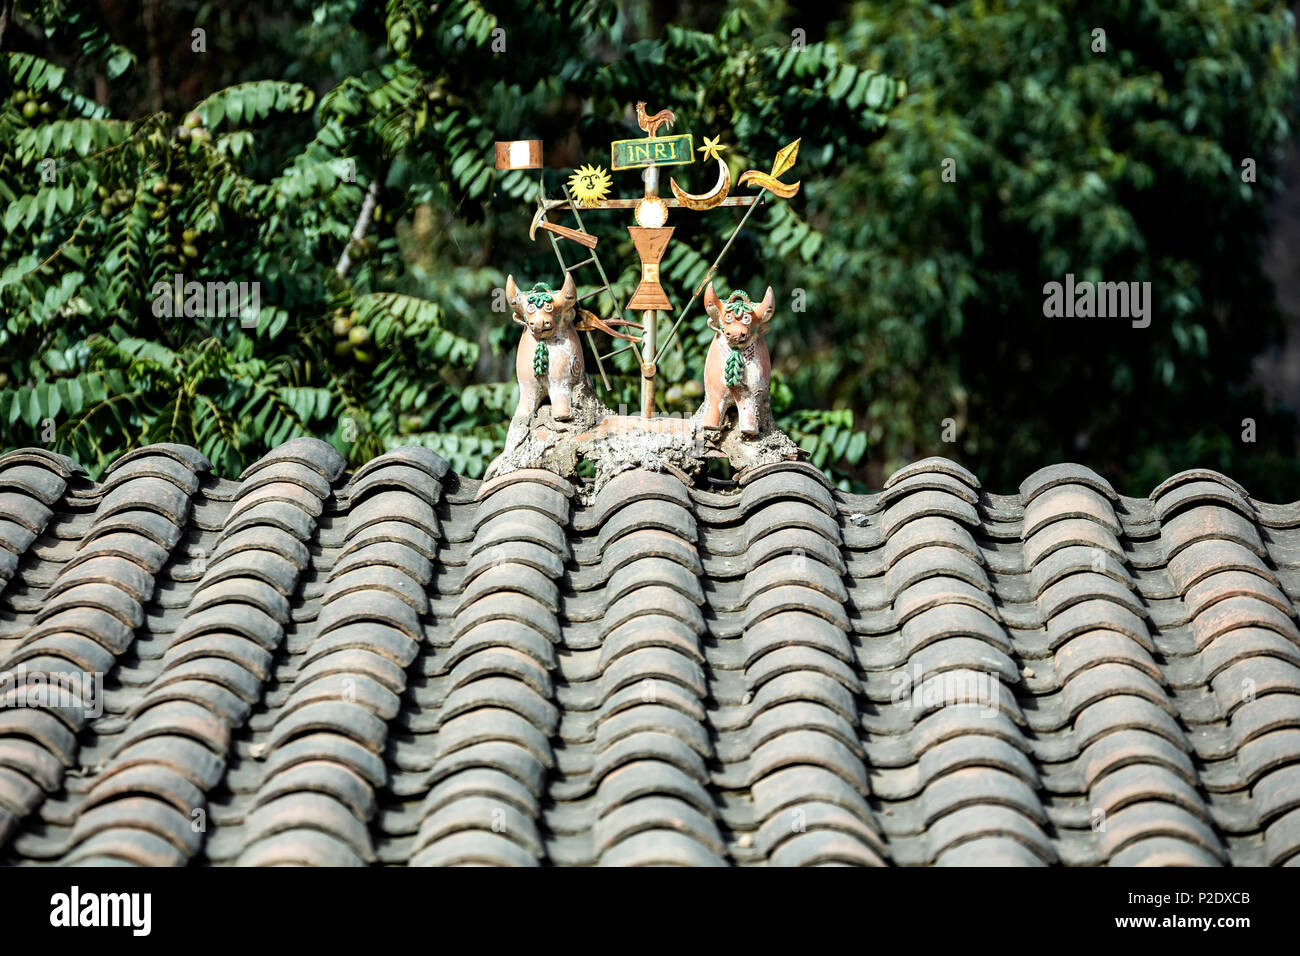 Religious and fertility symbols (bulls) on top of house, Ollantaytambo, Cusco, Peru - Stock Image